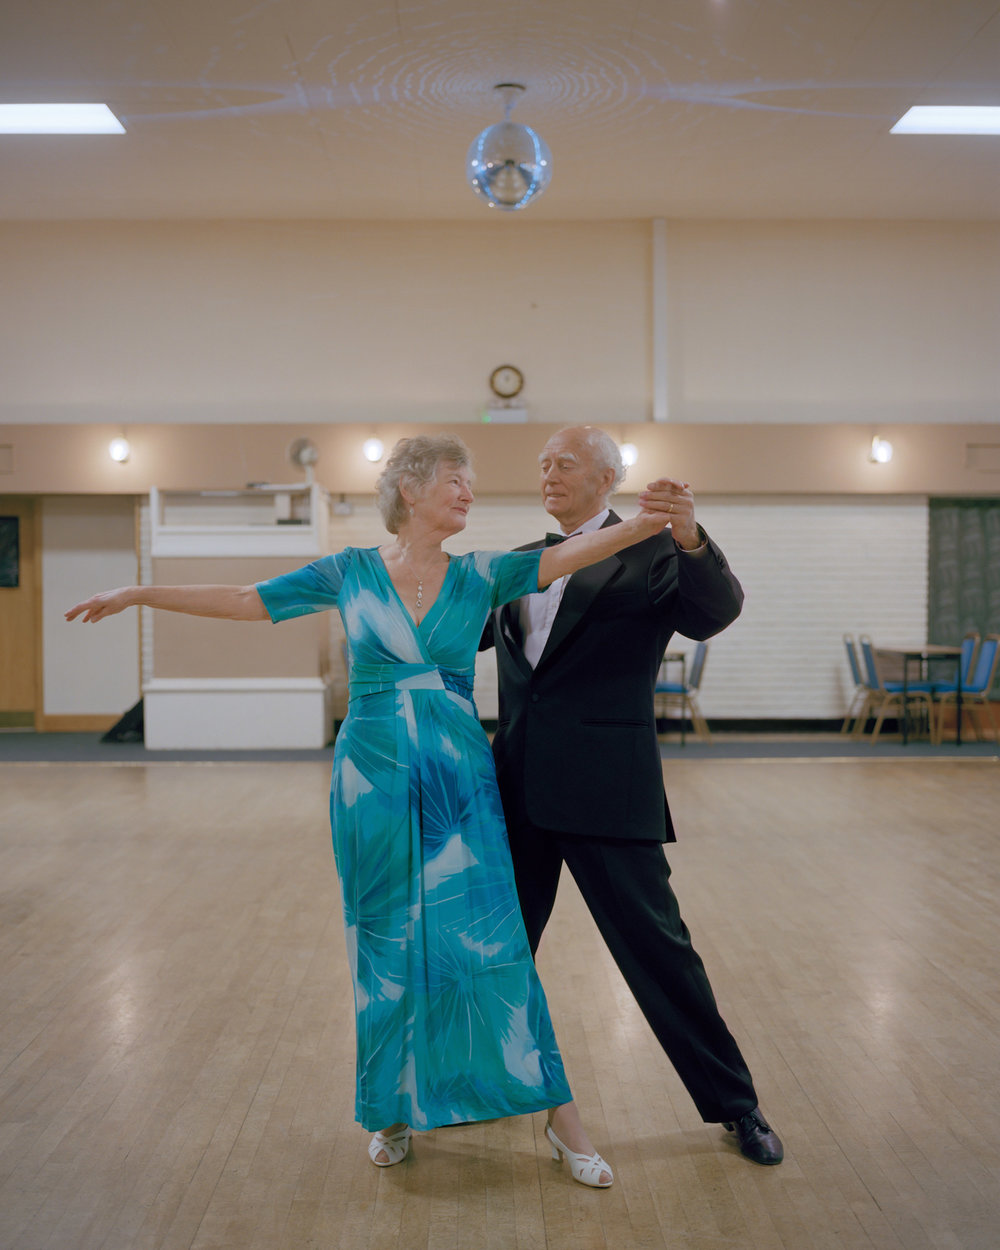 Bill, an ex-miner, with his partner Pauline attending their Ballroom Dancing class, Forest Town Miners' Welfare, Nottinghamshire.